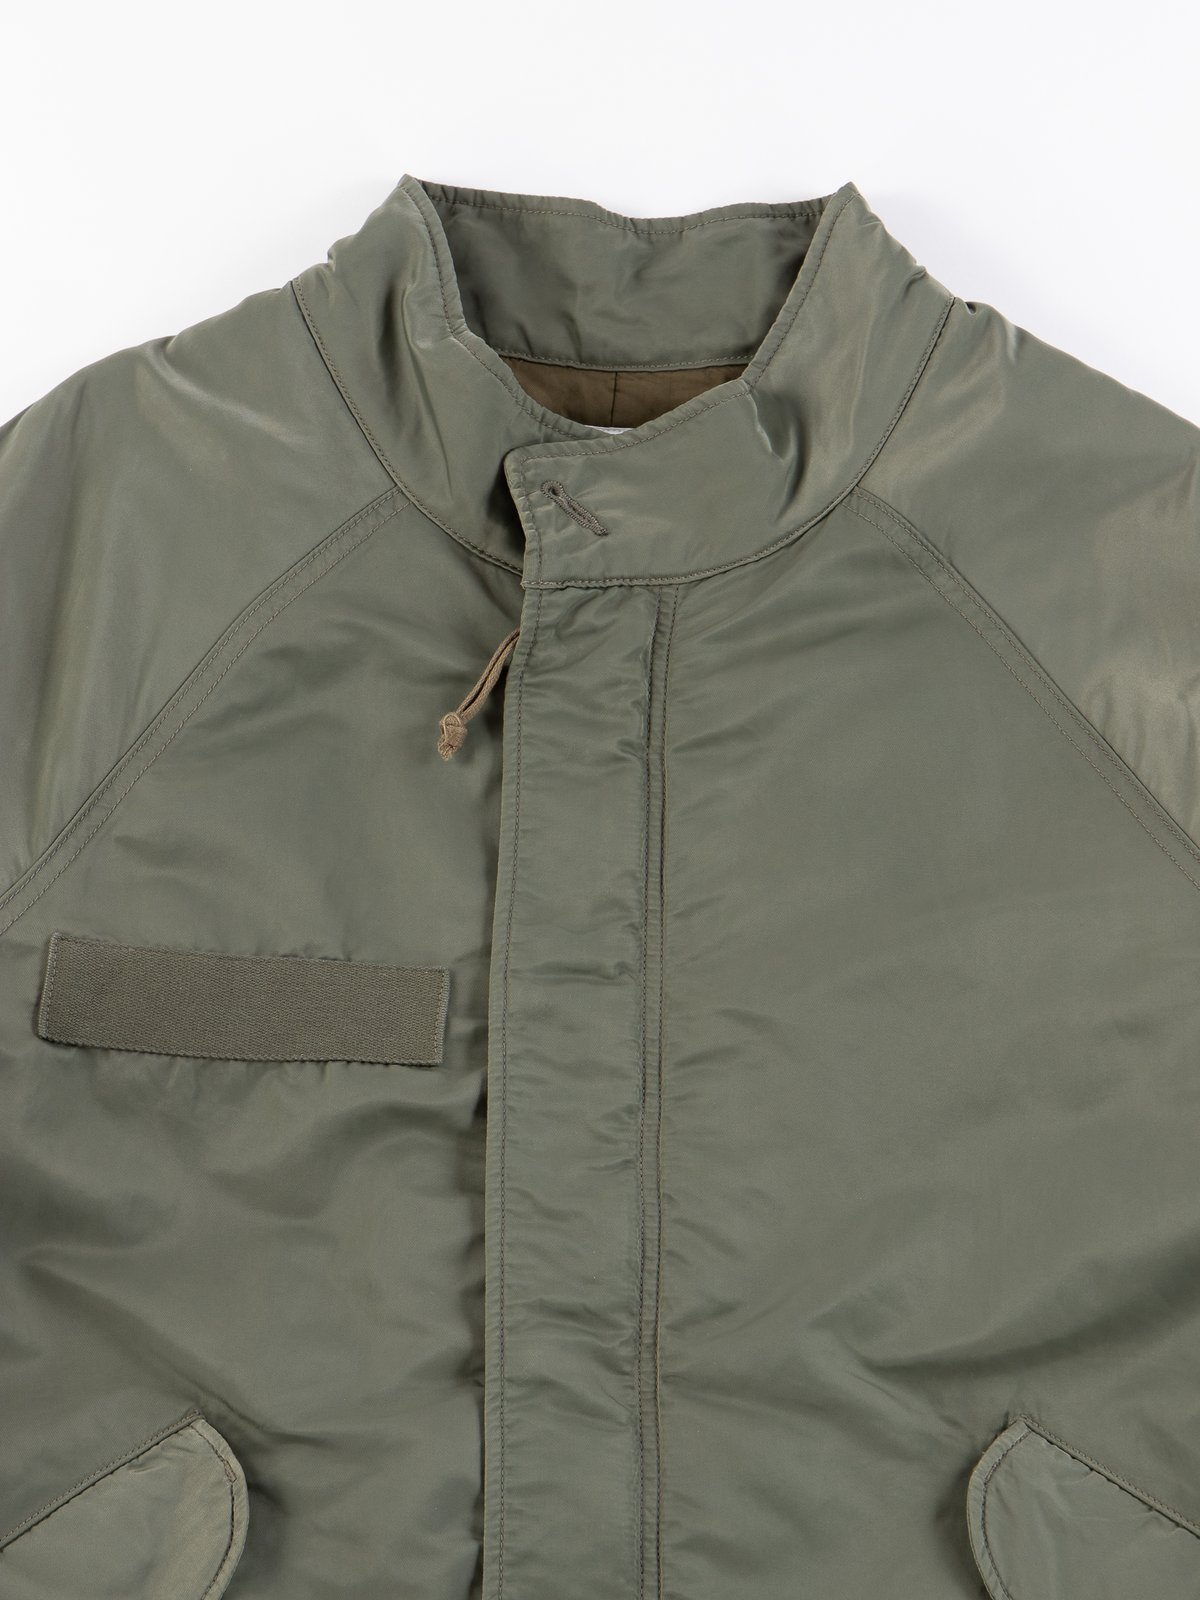 Olive Six–Five Fishtail Parka - Image 4